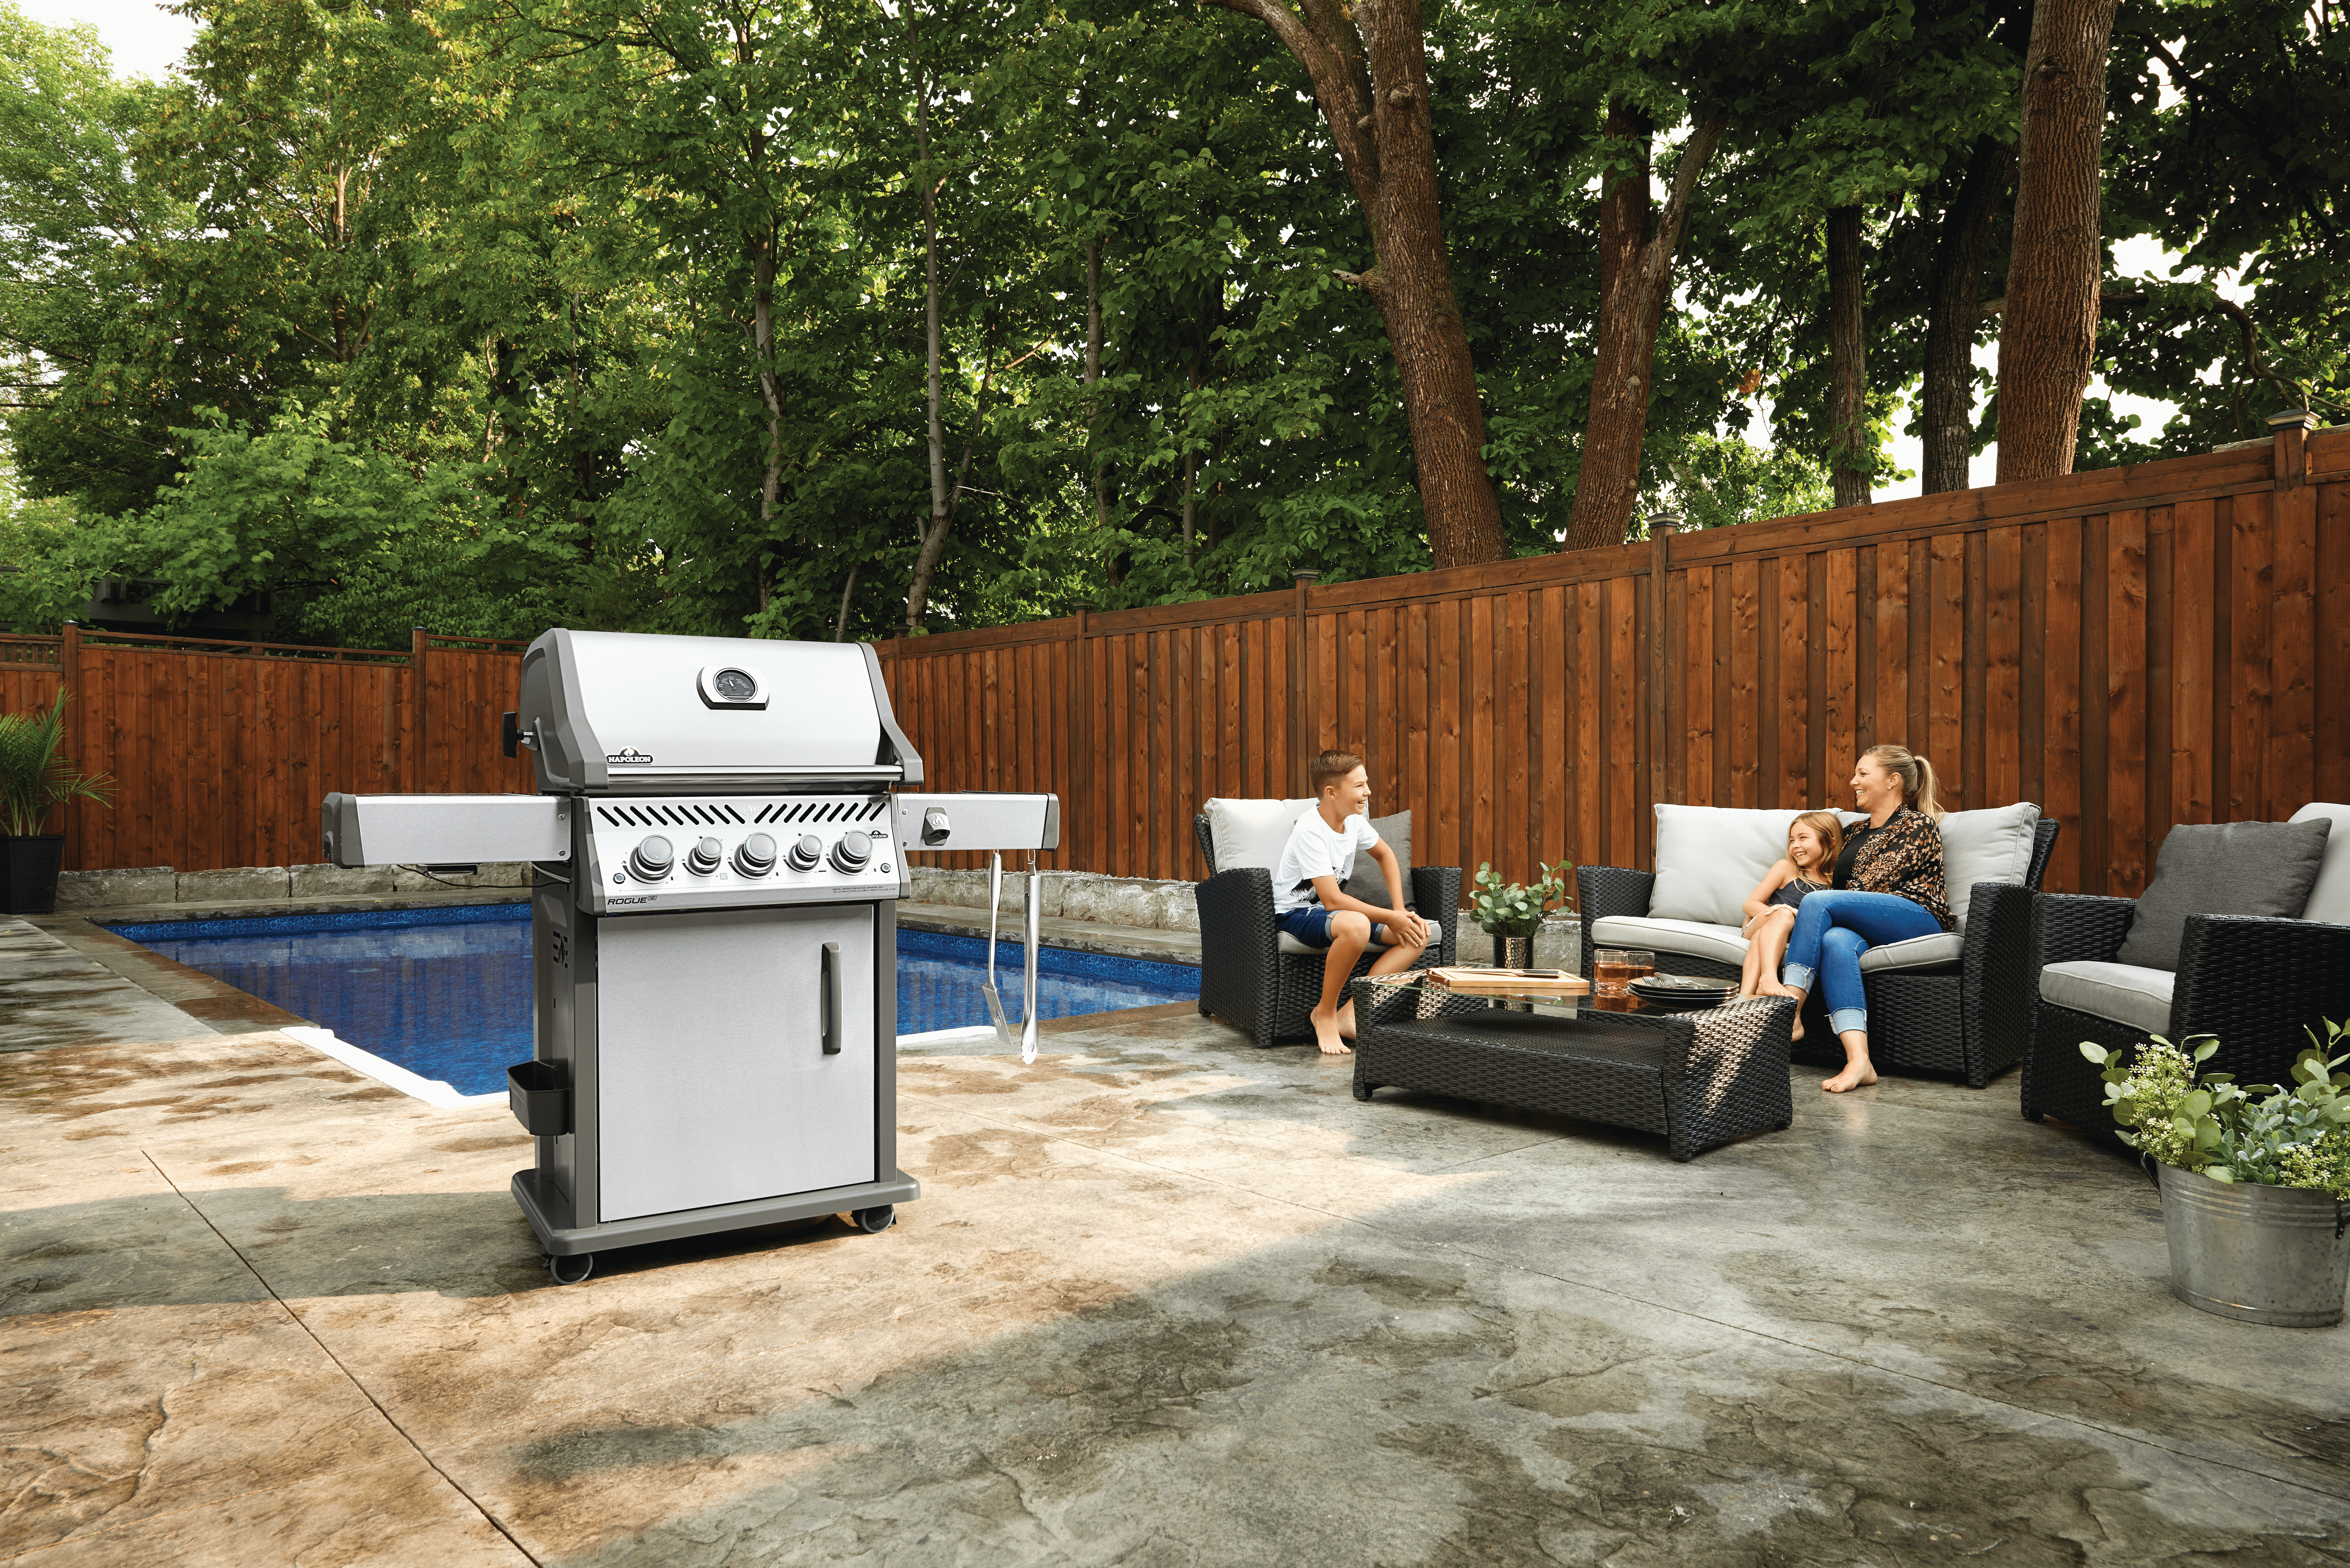 Rogue® SE 425 Propane Gas Grill with Infrared Rear and Side Burners, Stainless Steel